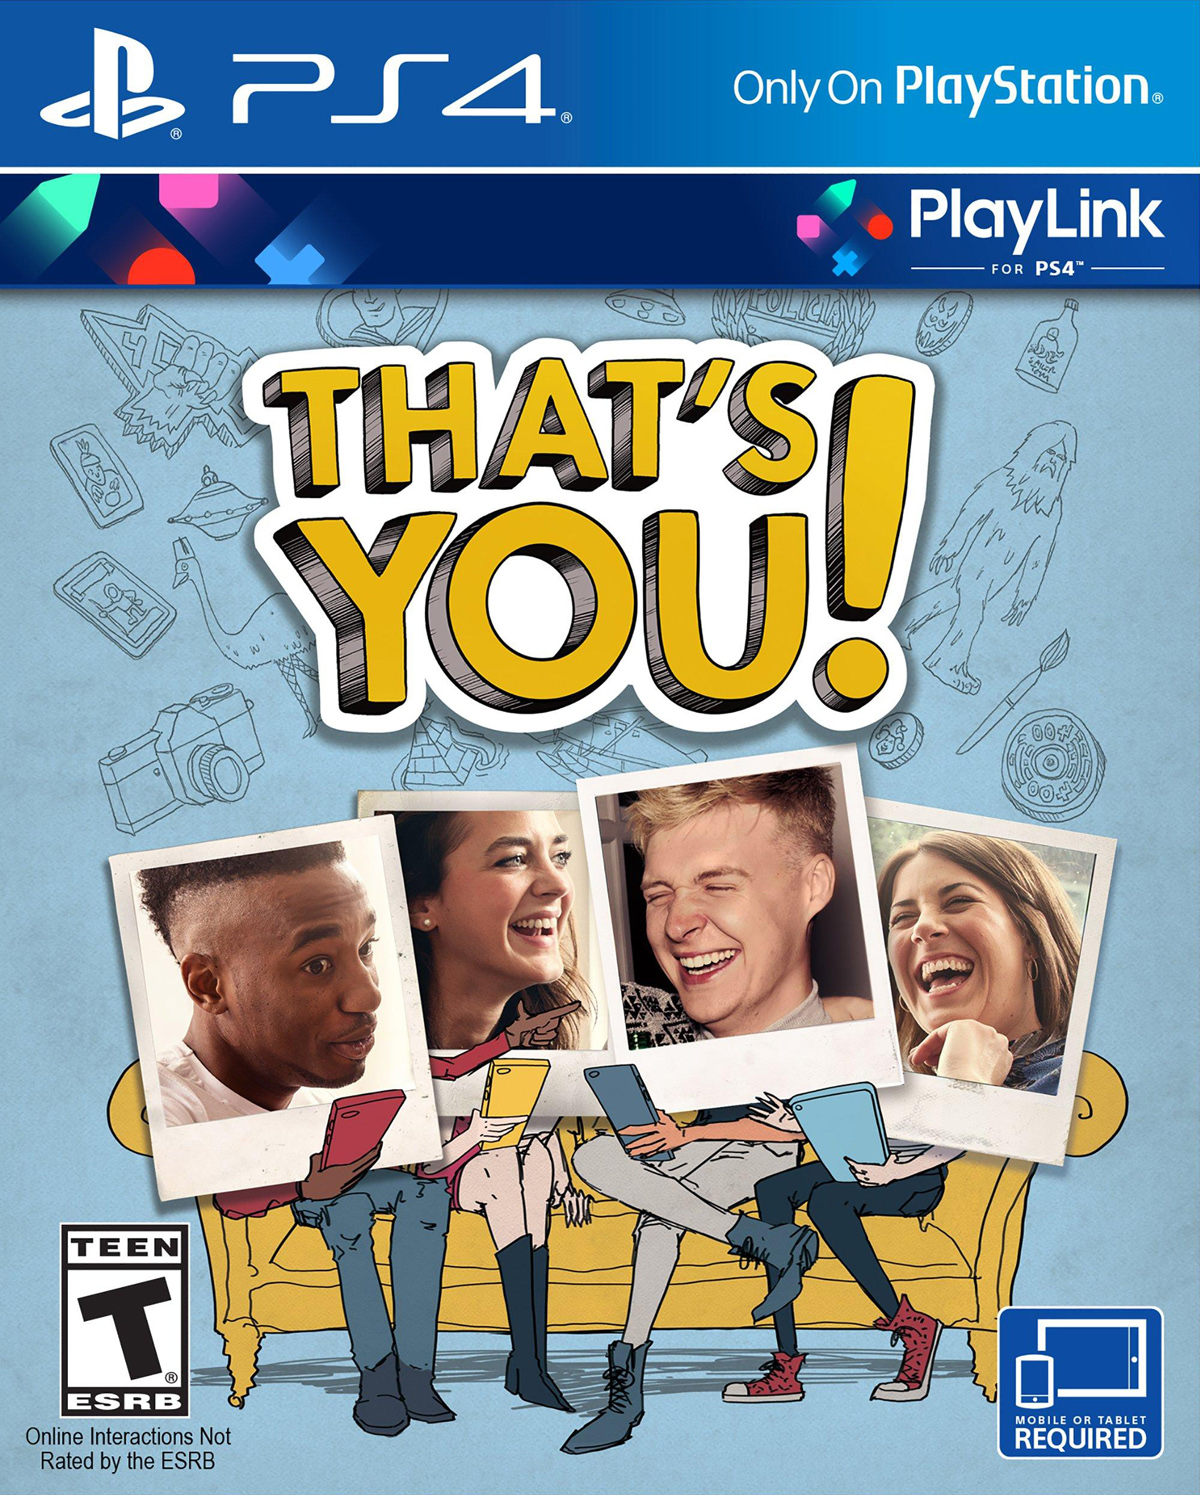 That's You! | Это Ты! [PS4 Exclusive PlayLink] 5.05 / 6.72 / 7.02 [EUR] (2017) [Русский] (v1.04)